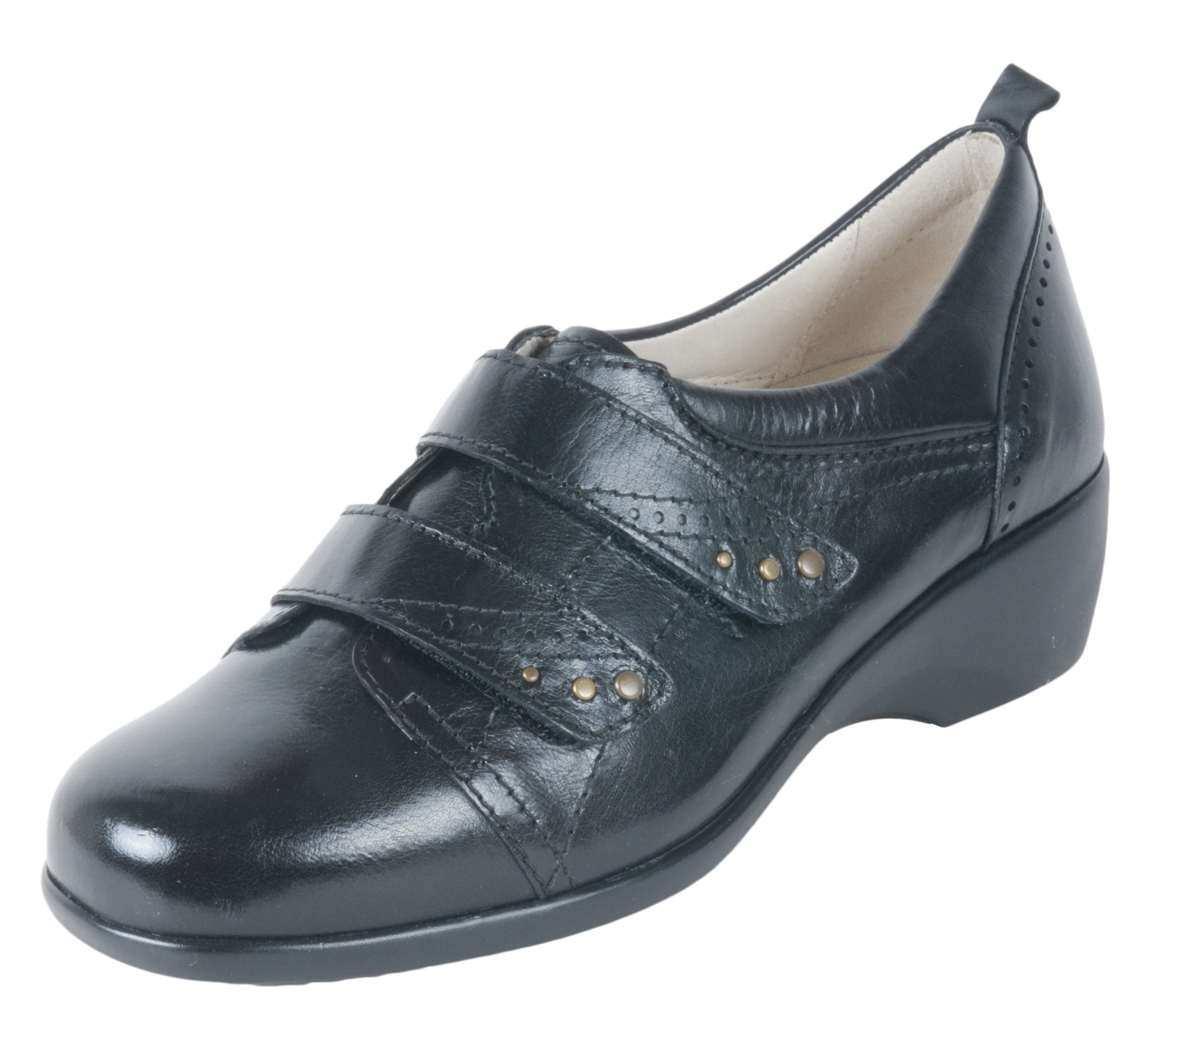 Orthopedic And Comfort Shoes For Women Drucker Channel